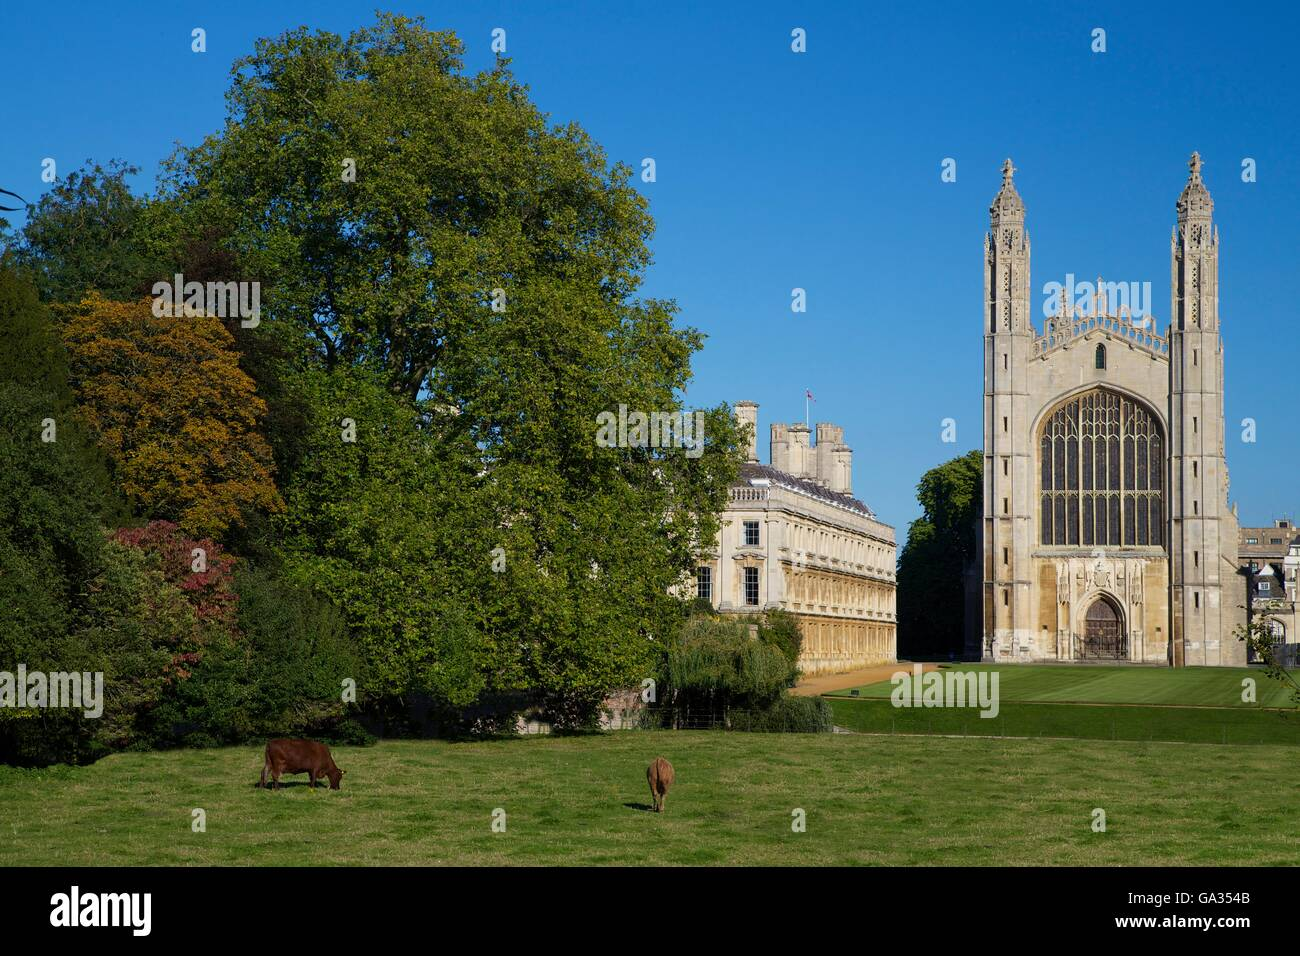 Cattle grazing near the River Cam, King's College,  Cambridge University, Cambridgeshire, England, UK, GB, Europe - Stock Image